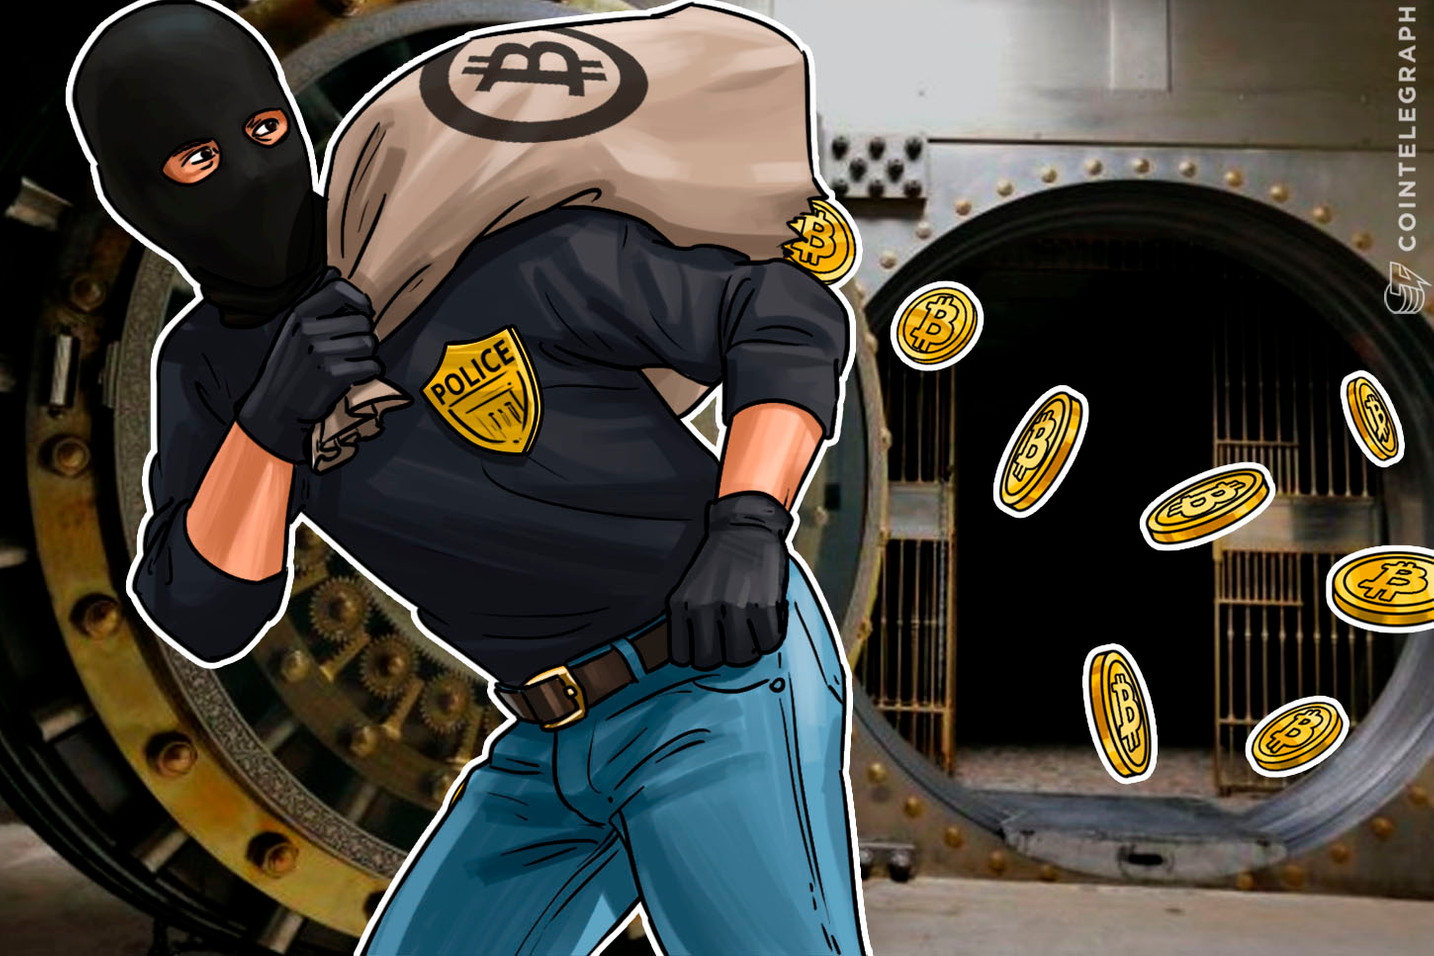 India: Police Officers Beat, Extorted 200 BTC From Businessman, Local Sources Say